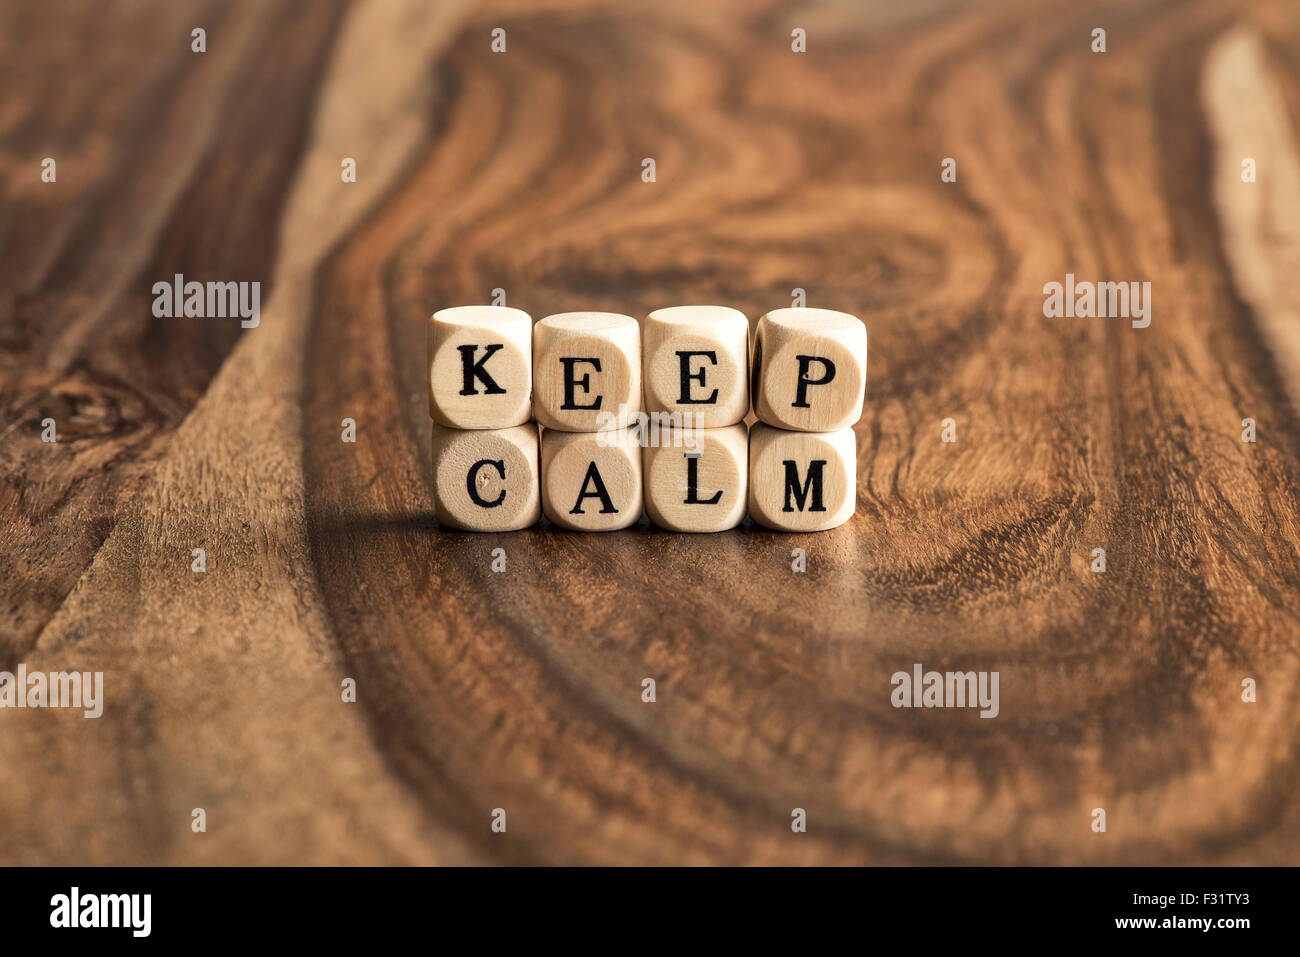 KEEP CALM word background on wood blocks - Stock Image